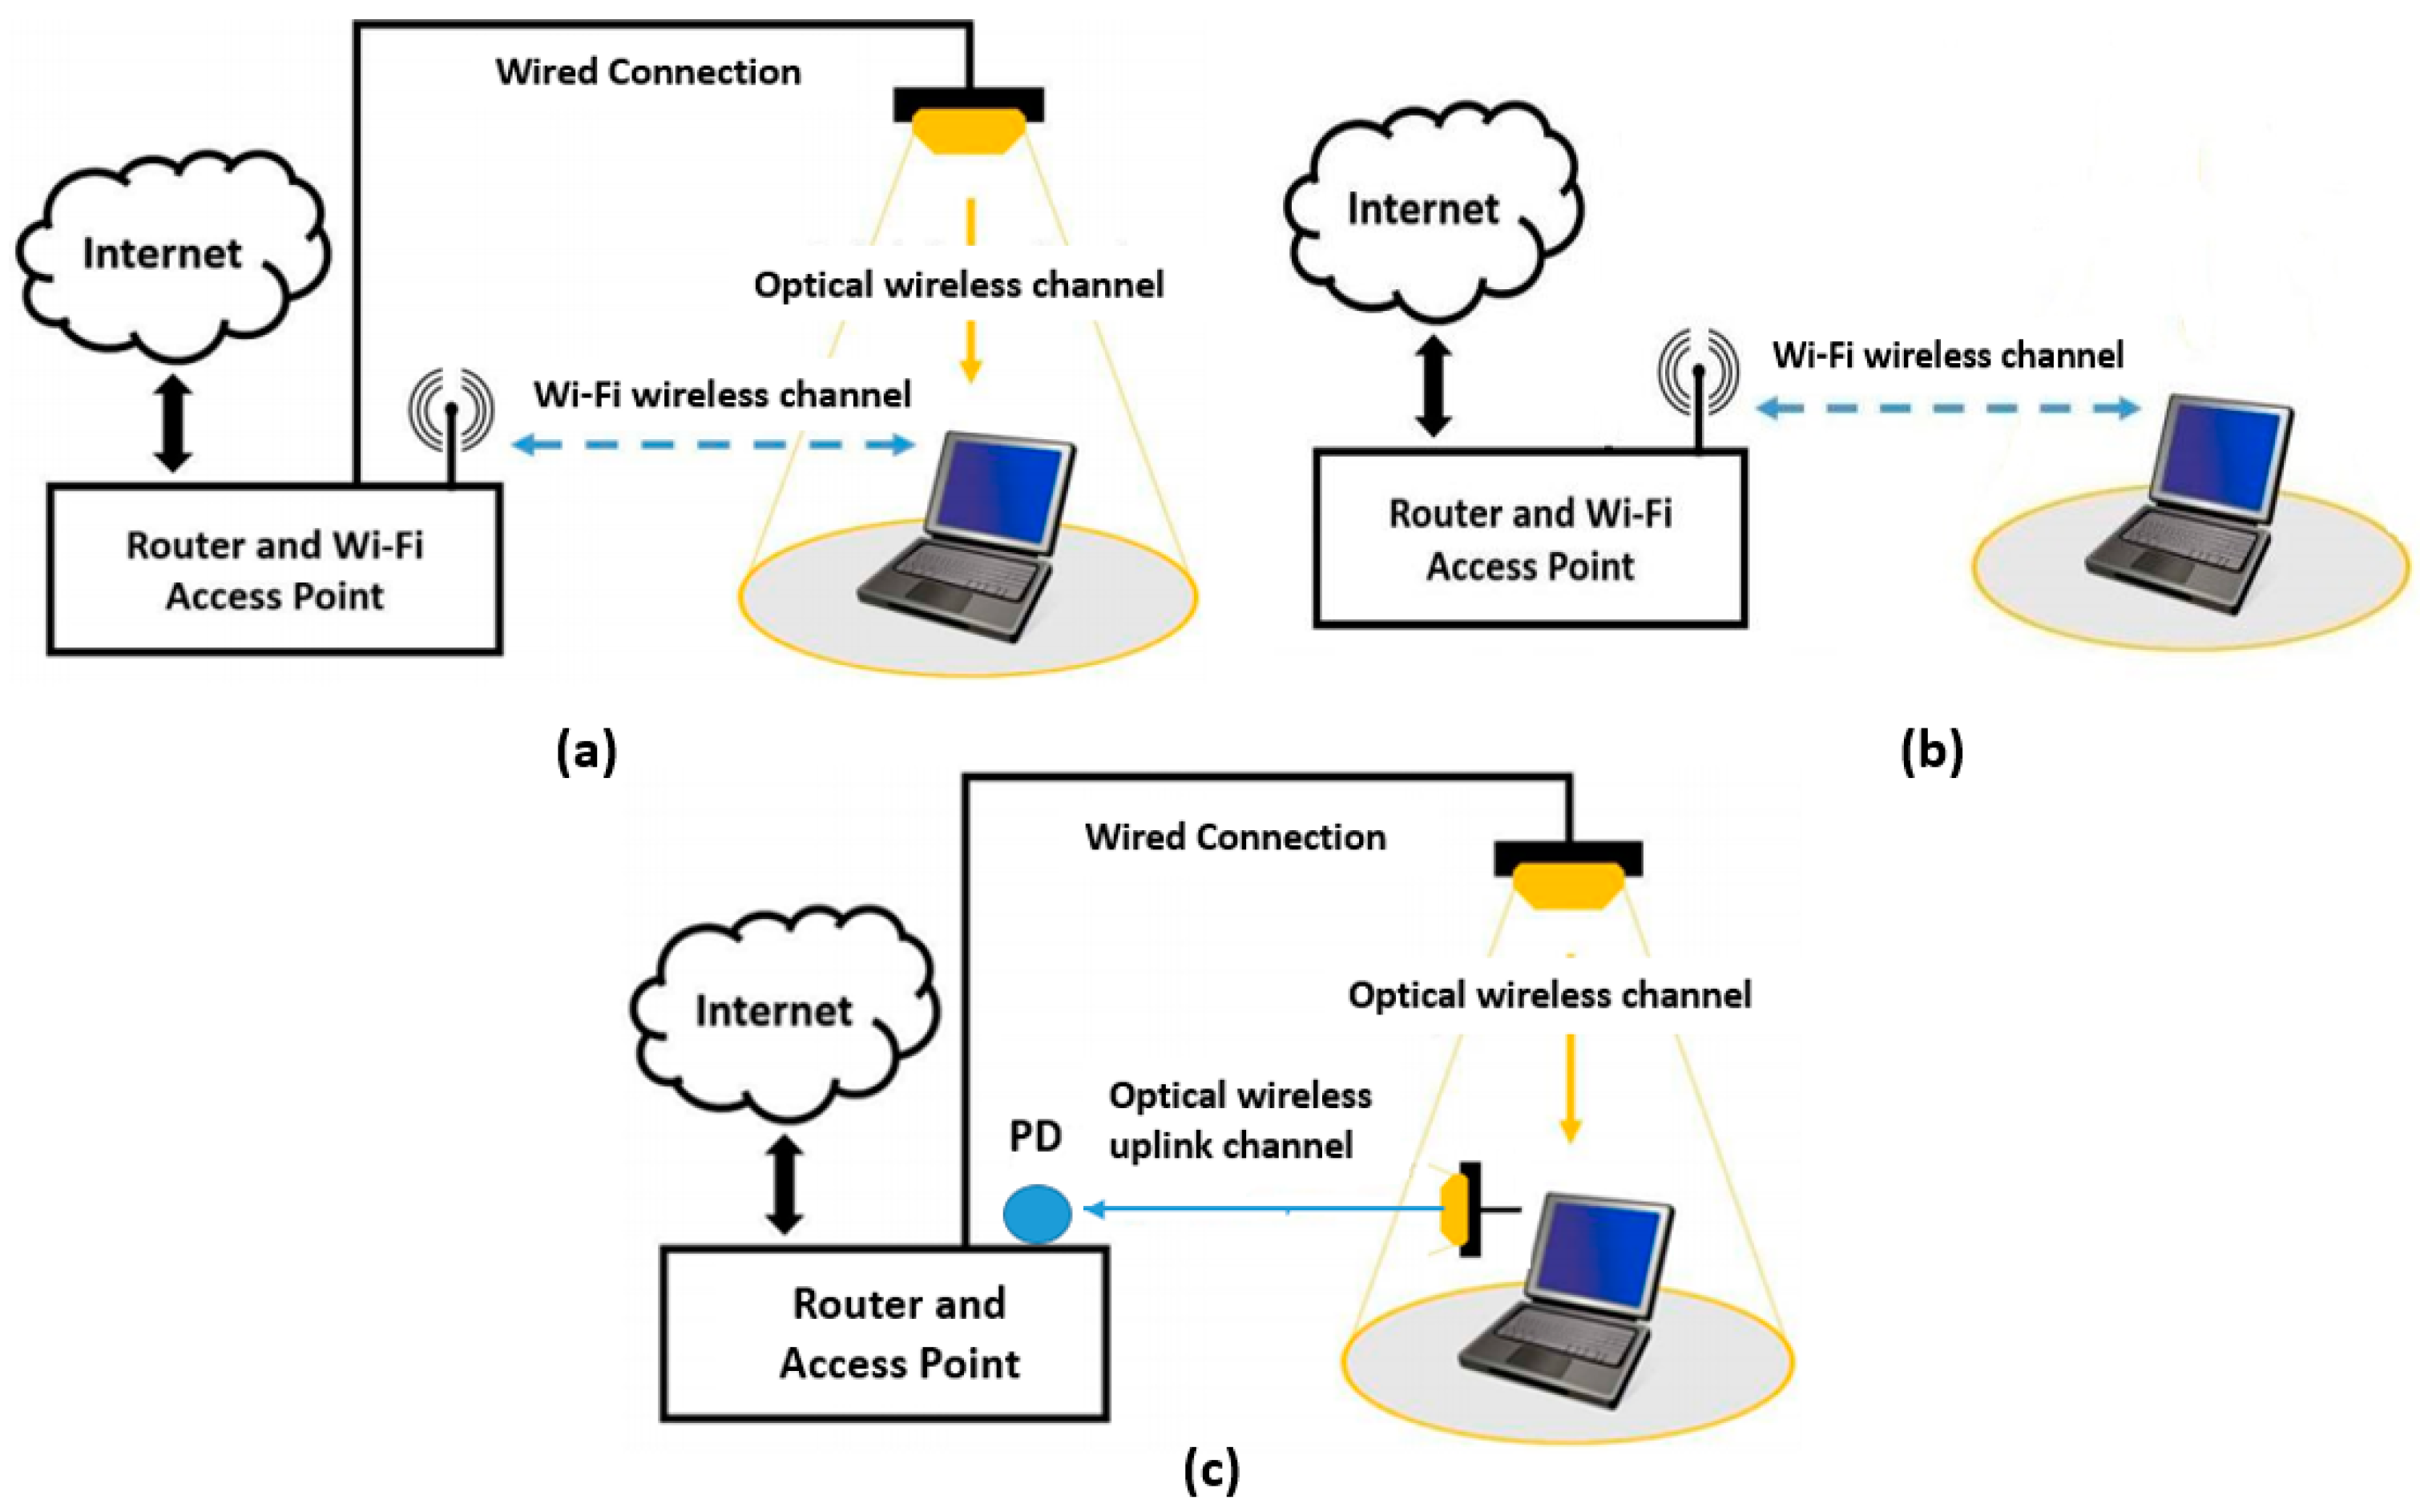 Energies Free Full Text Power Consumption Efficiency Evaluation Wi Fi Access Point Wiring Diagram 10 00254 G004